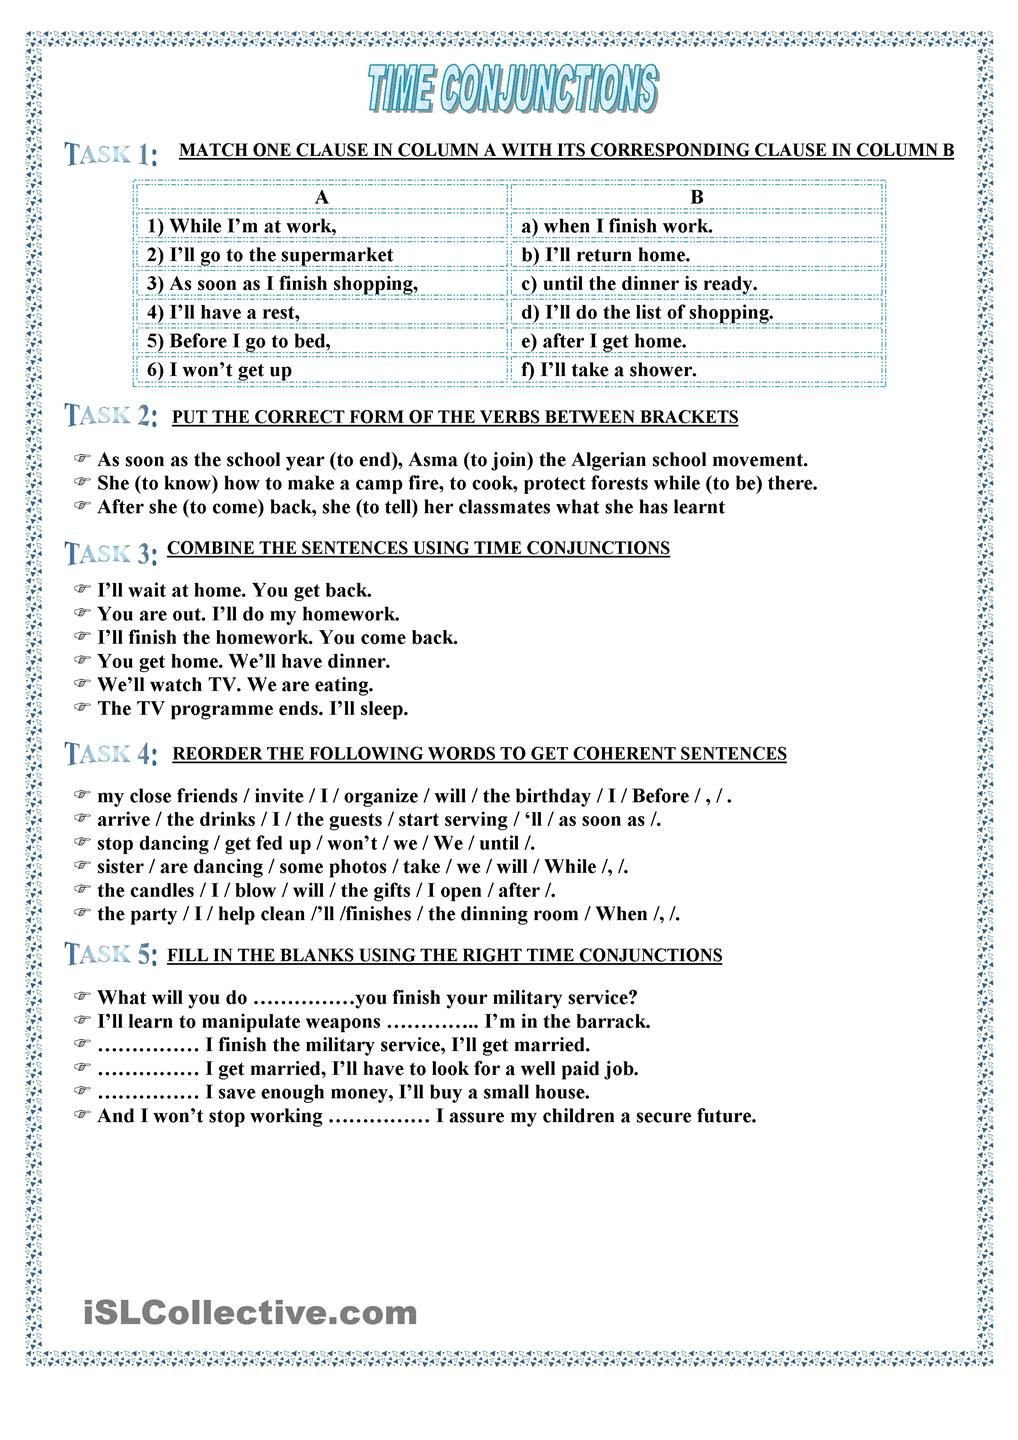 Conjunction Worksheets Pdf Time Conjunctions